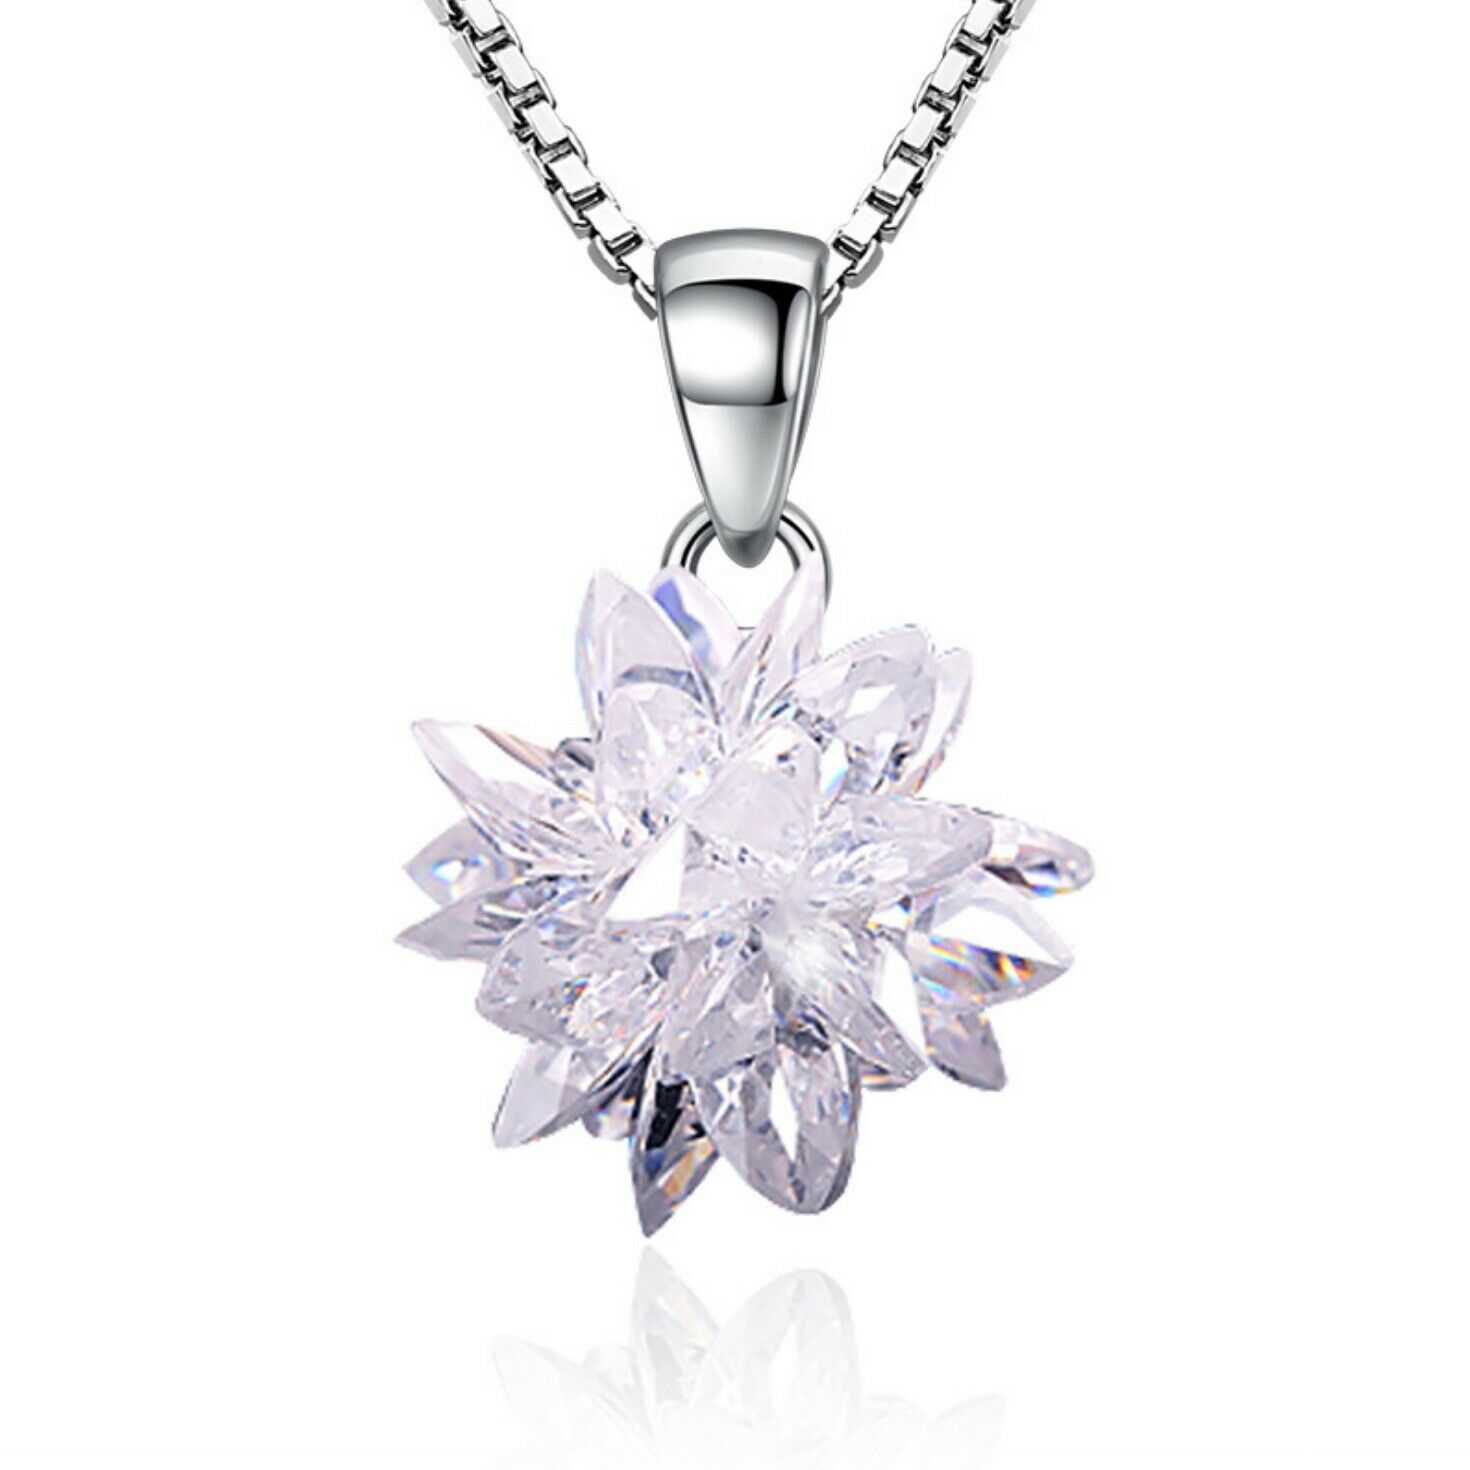 Jewellery - Crystal Ice Snowflake 925 Sterling Silver Pendant Chain Necklace Women Jewellery